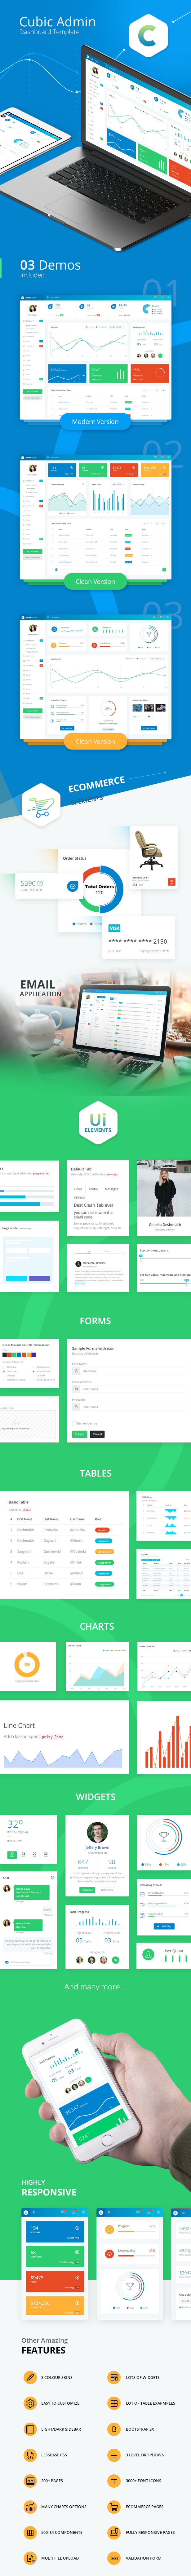 Cubic Admin - Dashboard + UI Kit Framework with Frontend Templates - 1